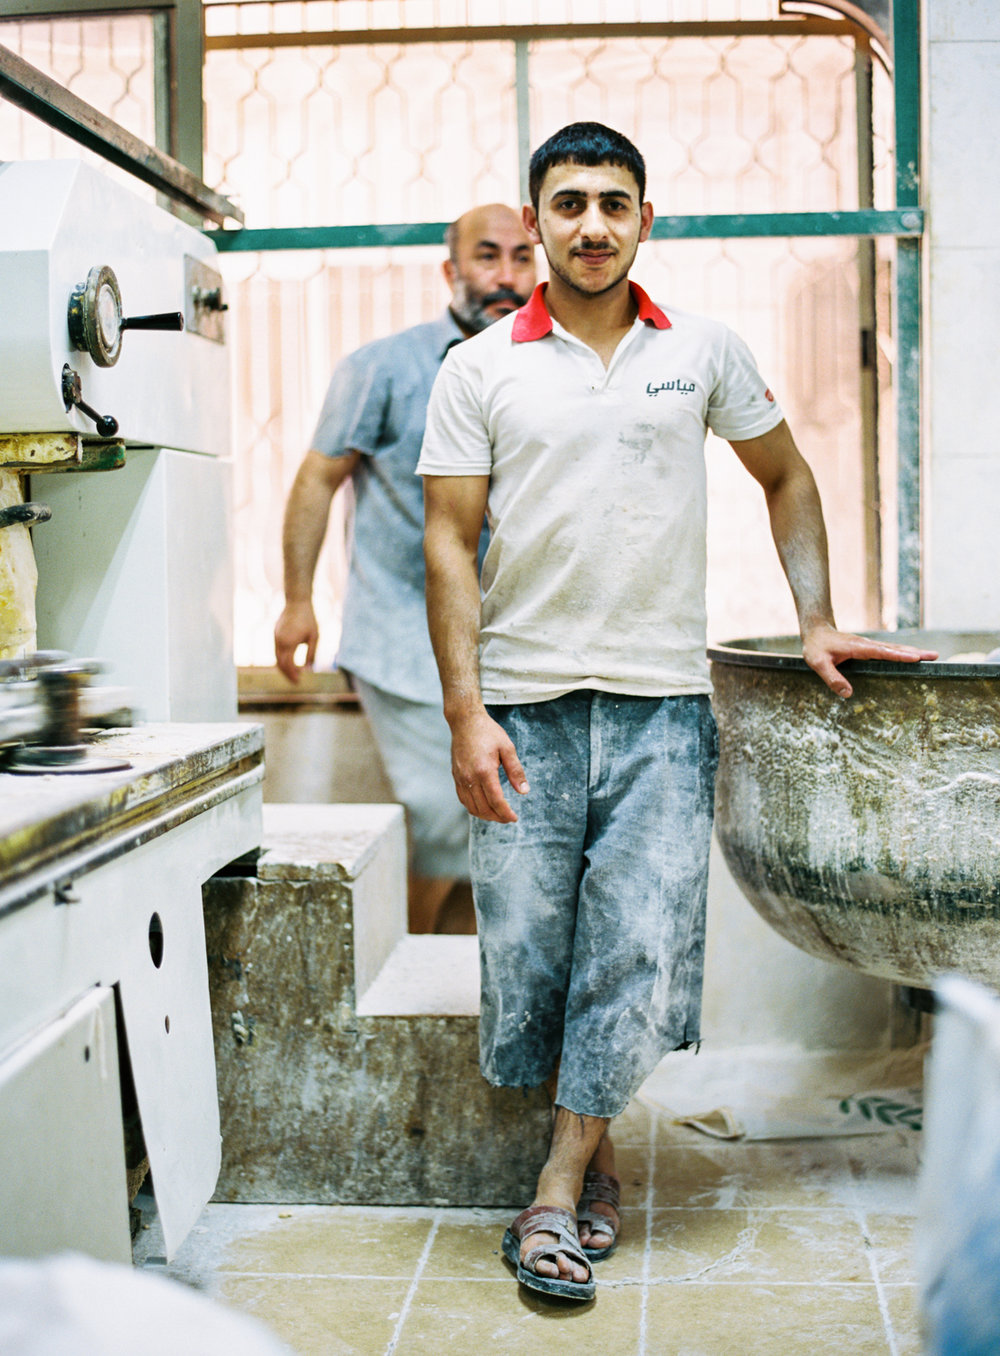 Bakers Hebron, West Bank Palestine  2015